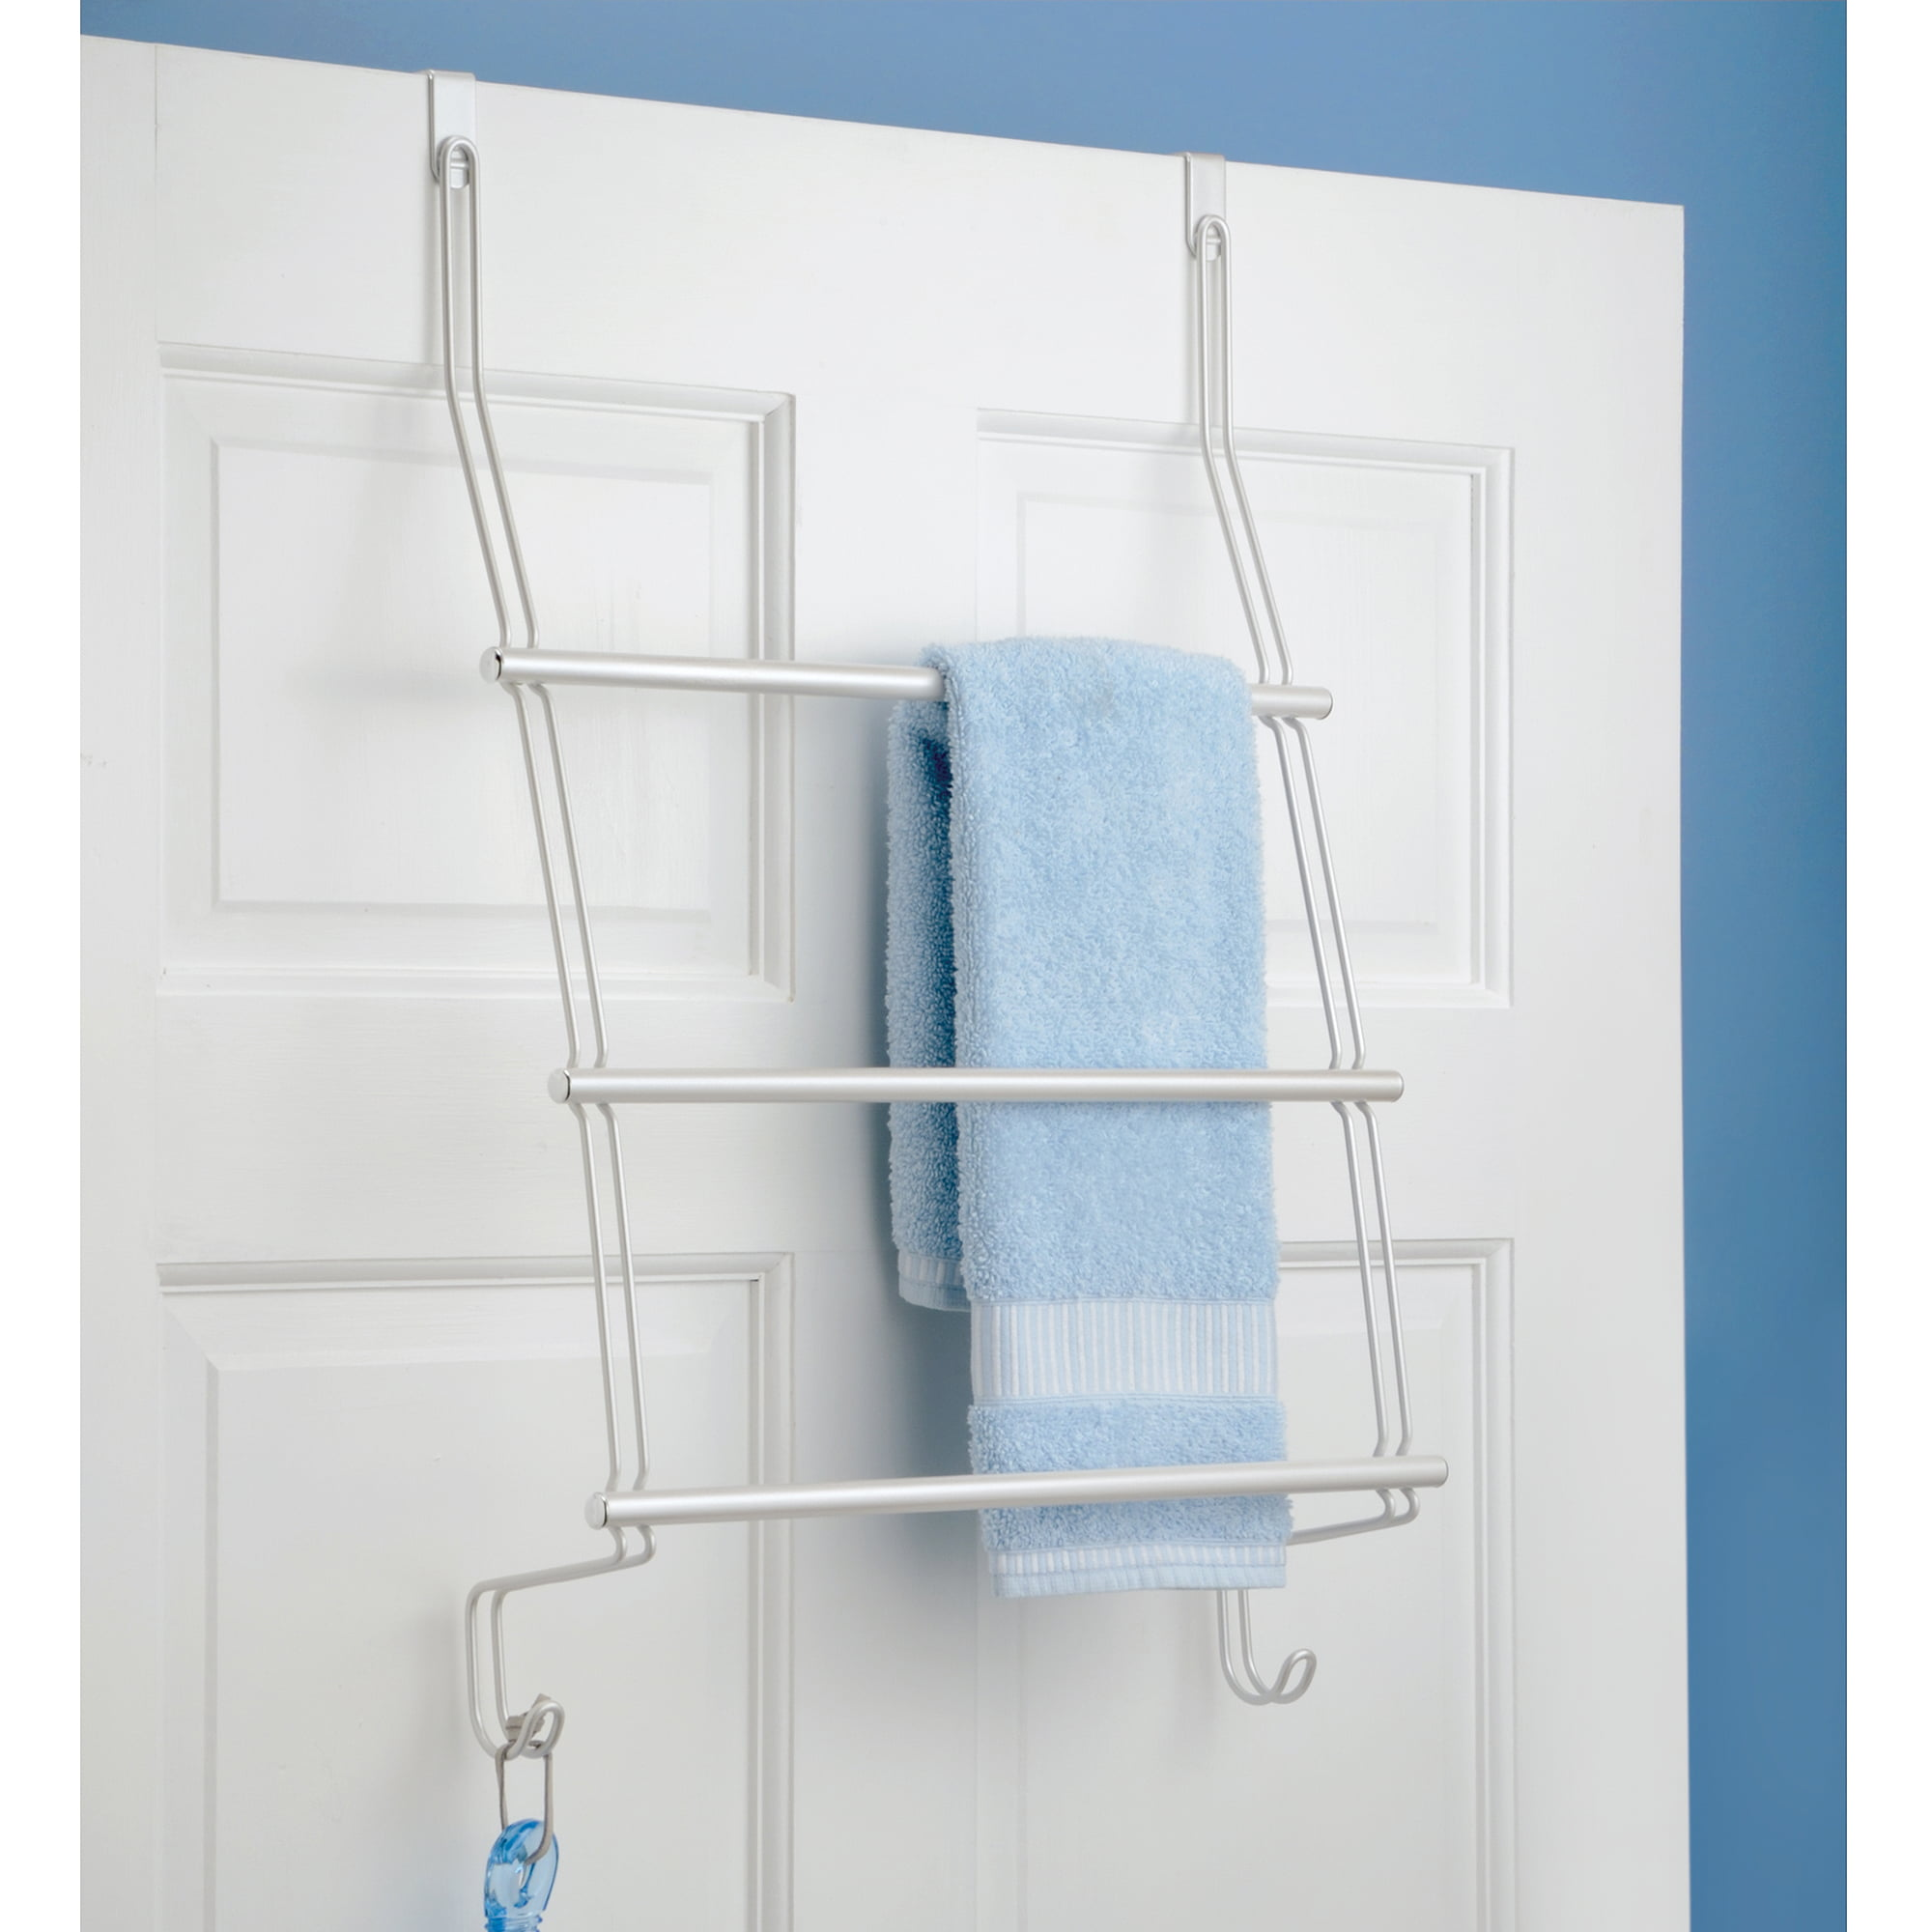 & InterDesign Classico Over-the-Door Towel Rack - Walmart.com pezcame.com